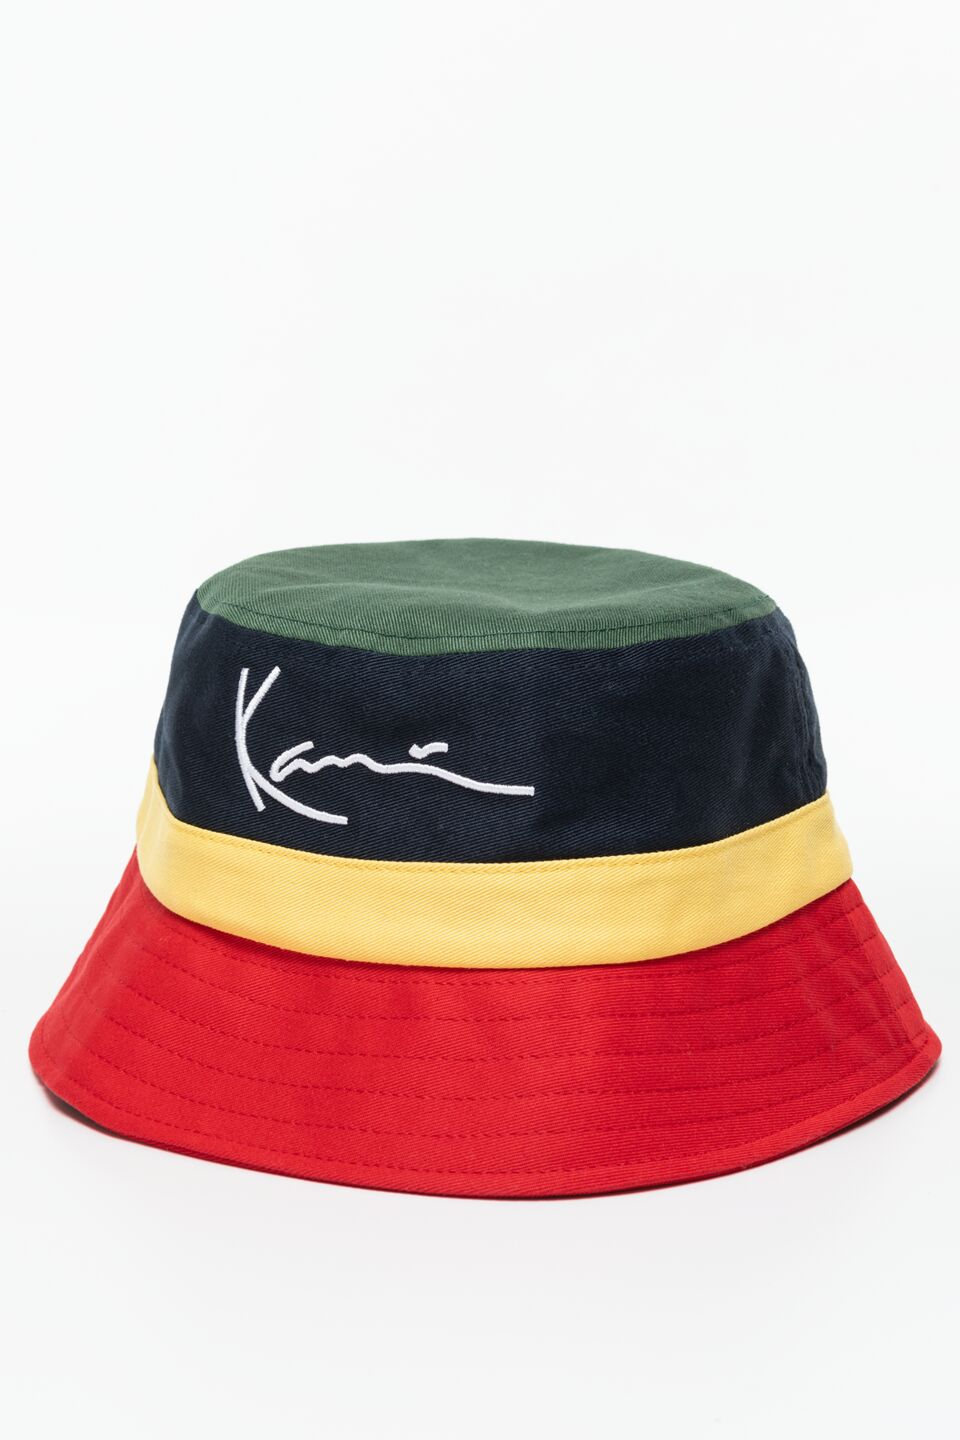 KARL KANI CAP 136 GREEN/NAVY/YELLOW/RED